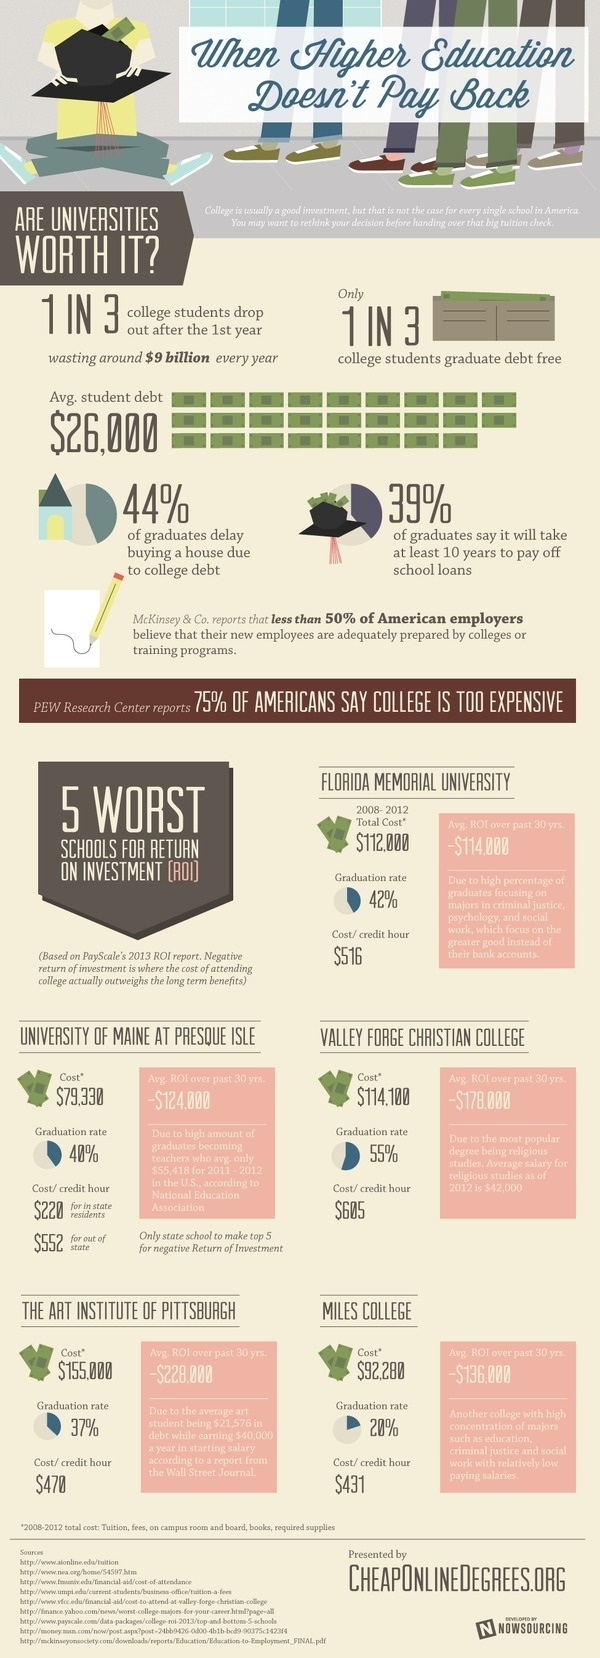 WHEN HIGHER EDUCATION DOESN'T PAY BACK #infographic